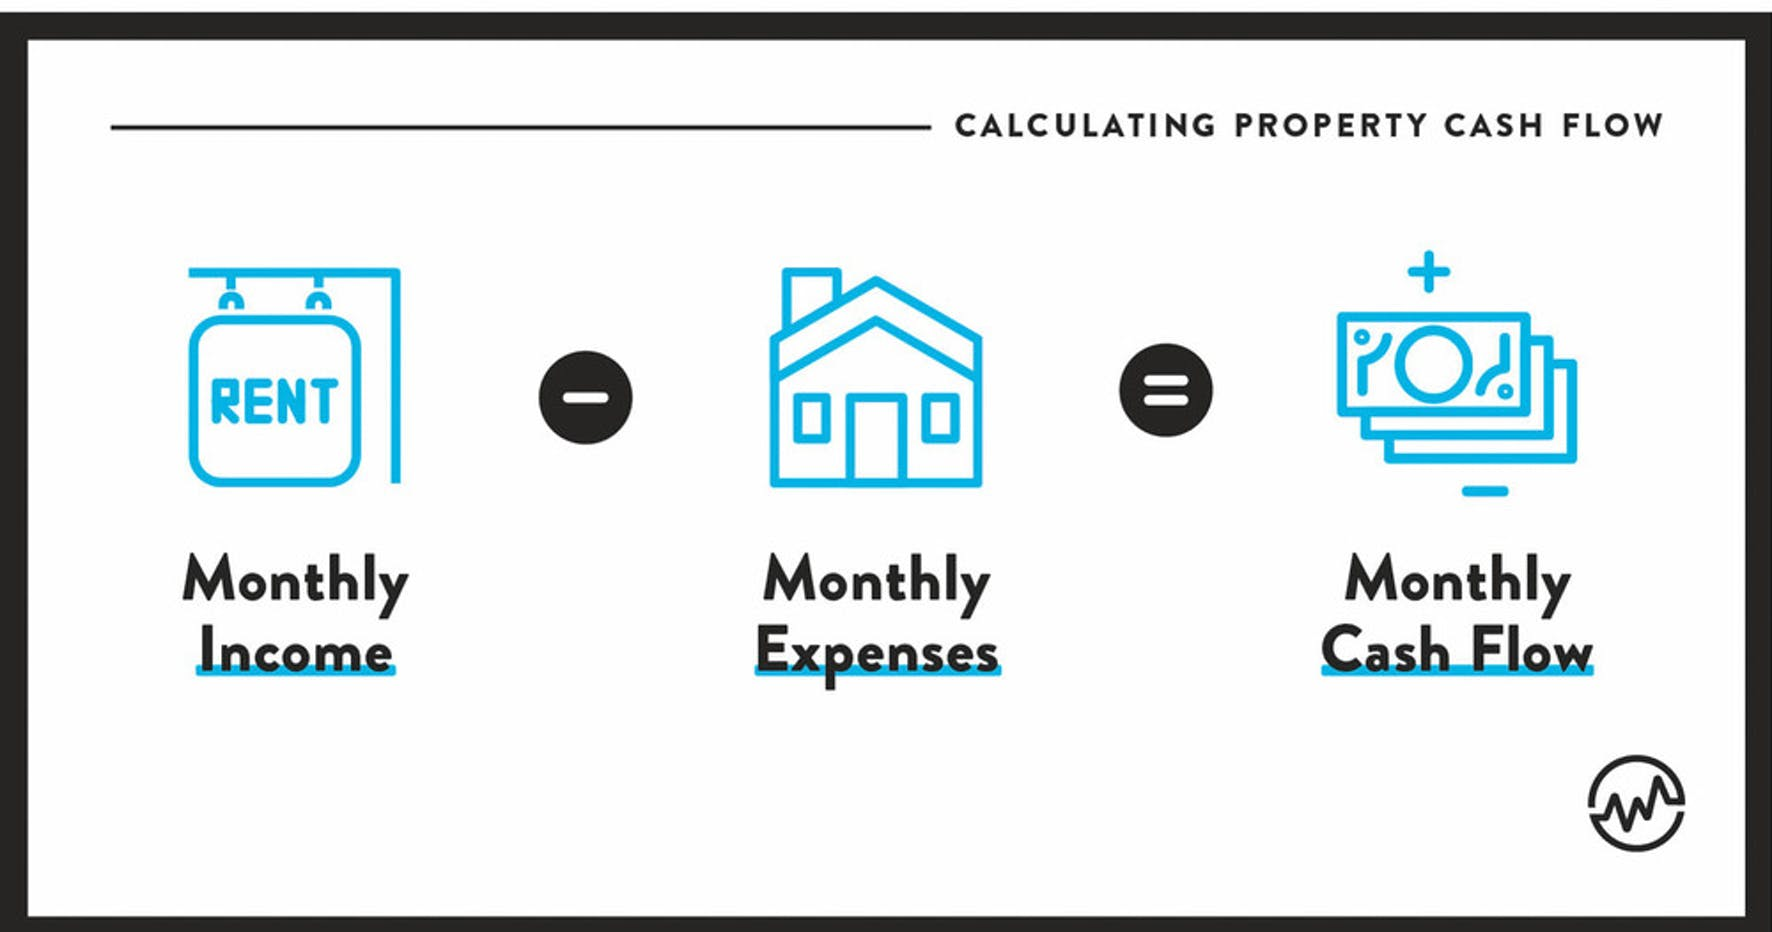 Calculating property cash flow: Monthly Income minus Monthly Expenses equals Monthly Cash Flow